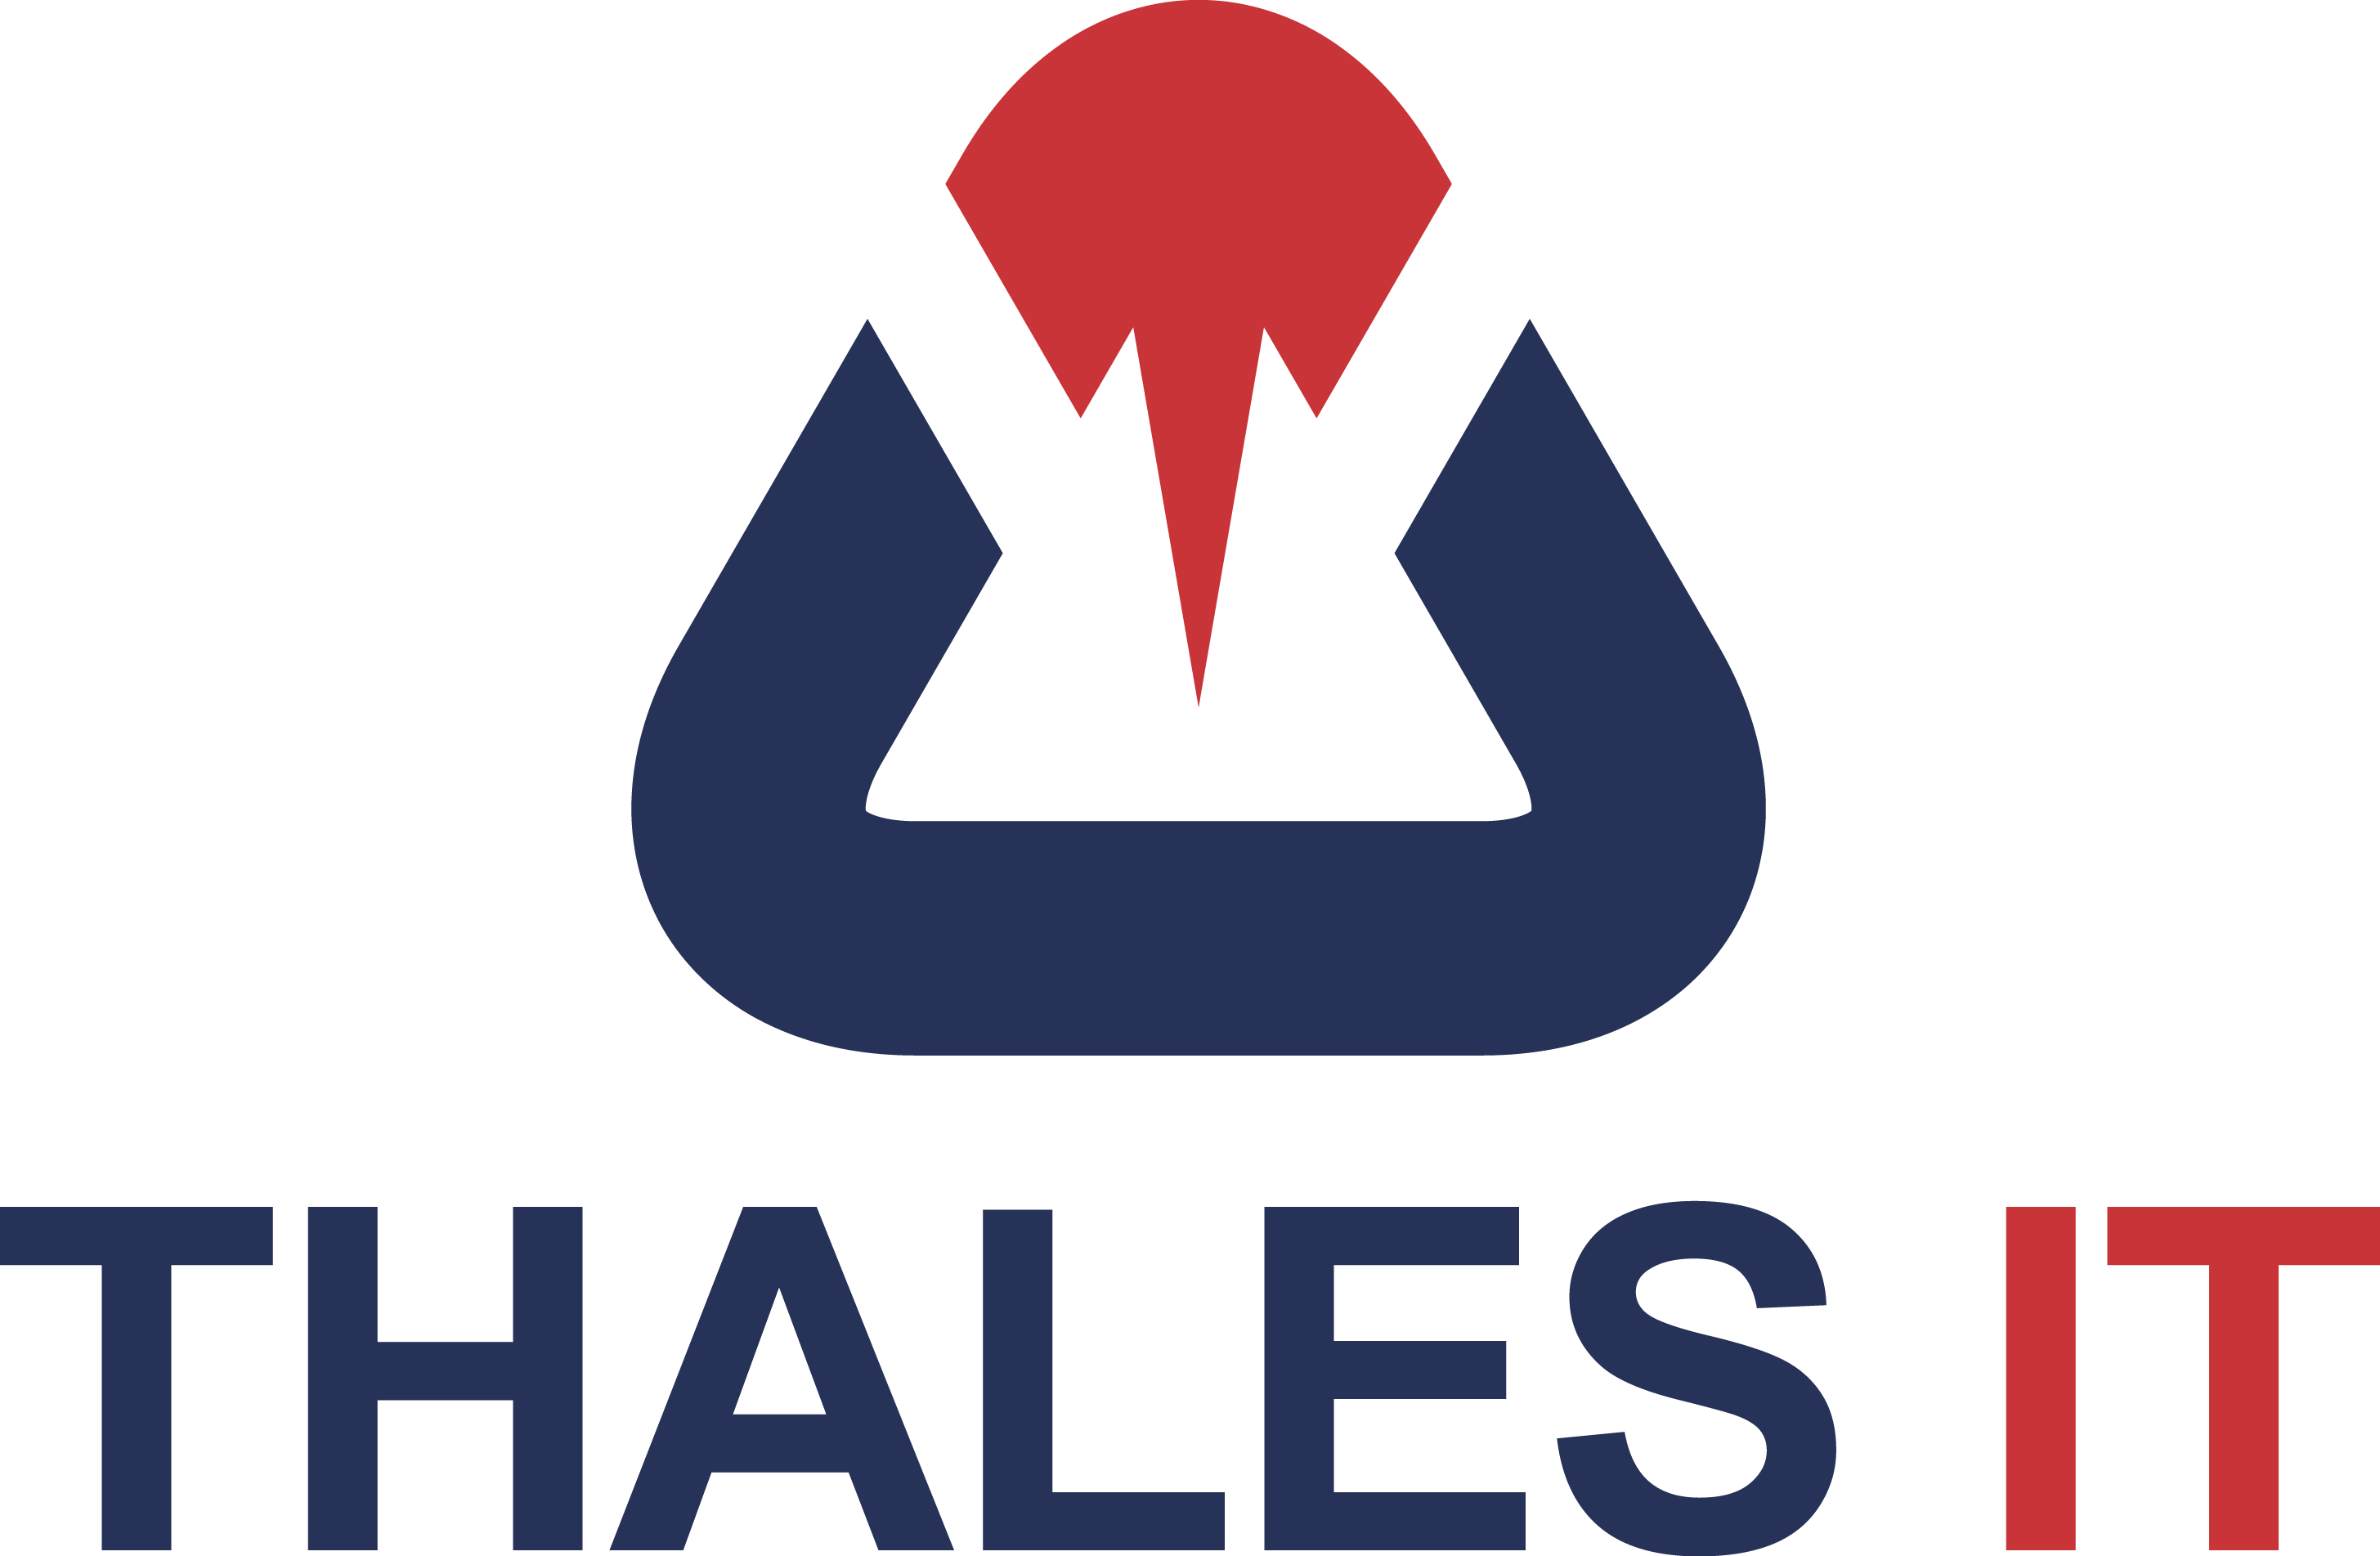 https://www.fondationbrunoboscardin.ch/wp-content/uploads/2018/05/THALES_IT.png